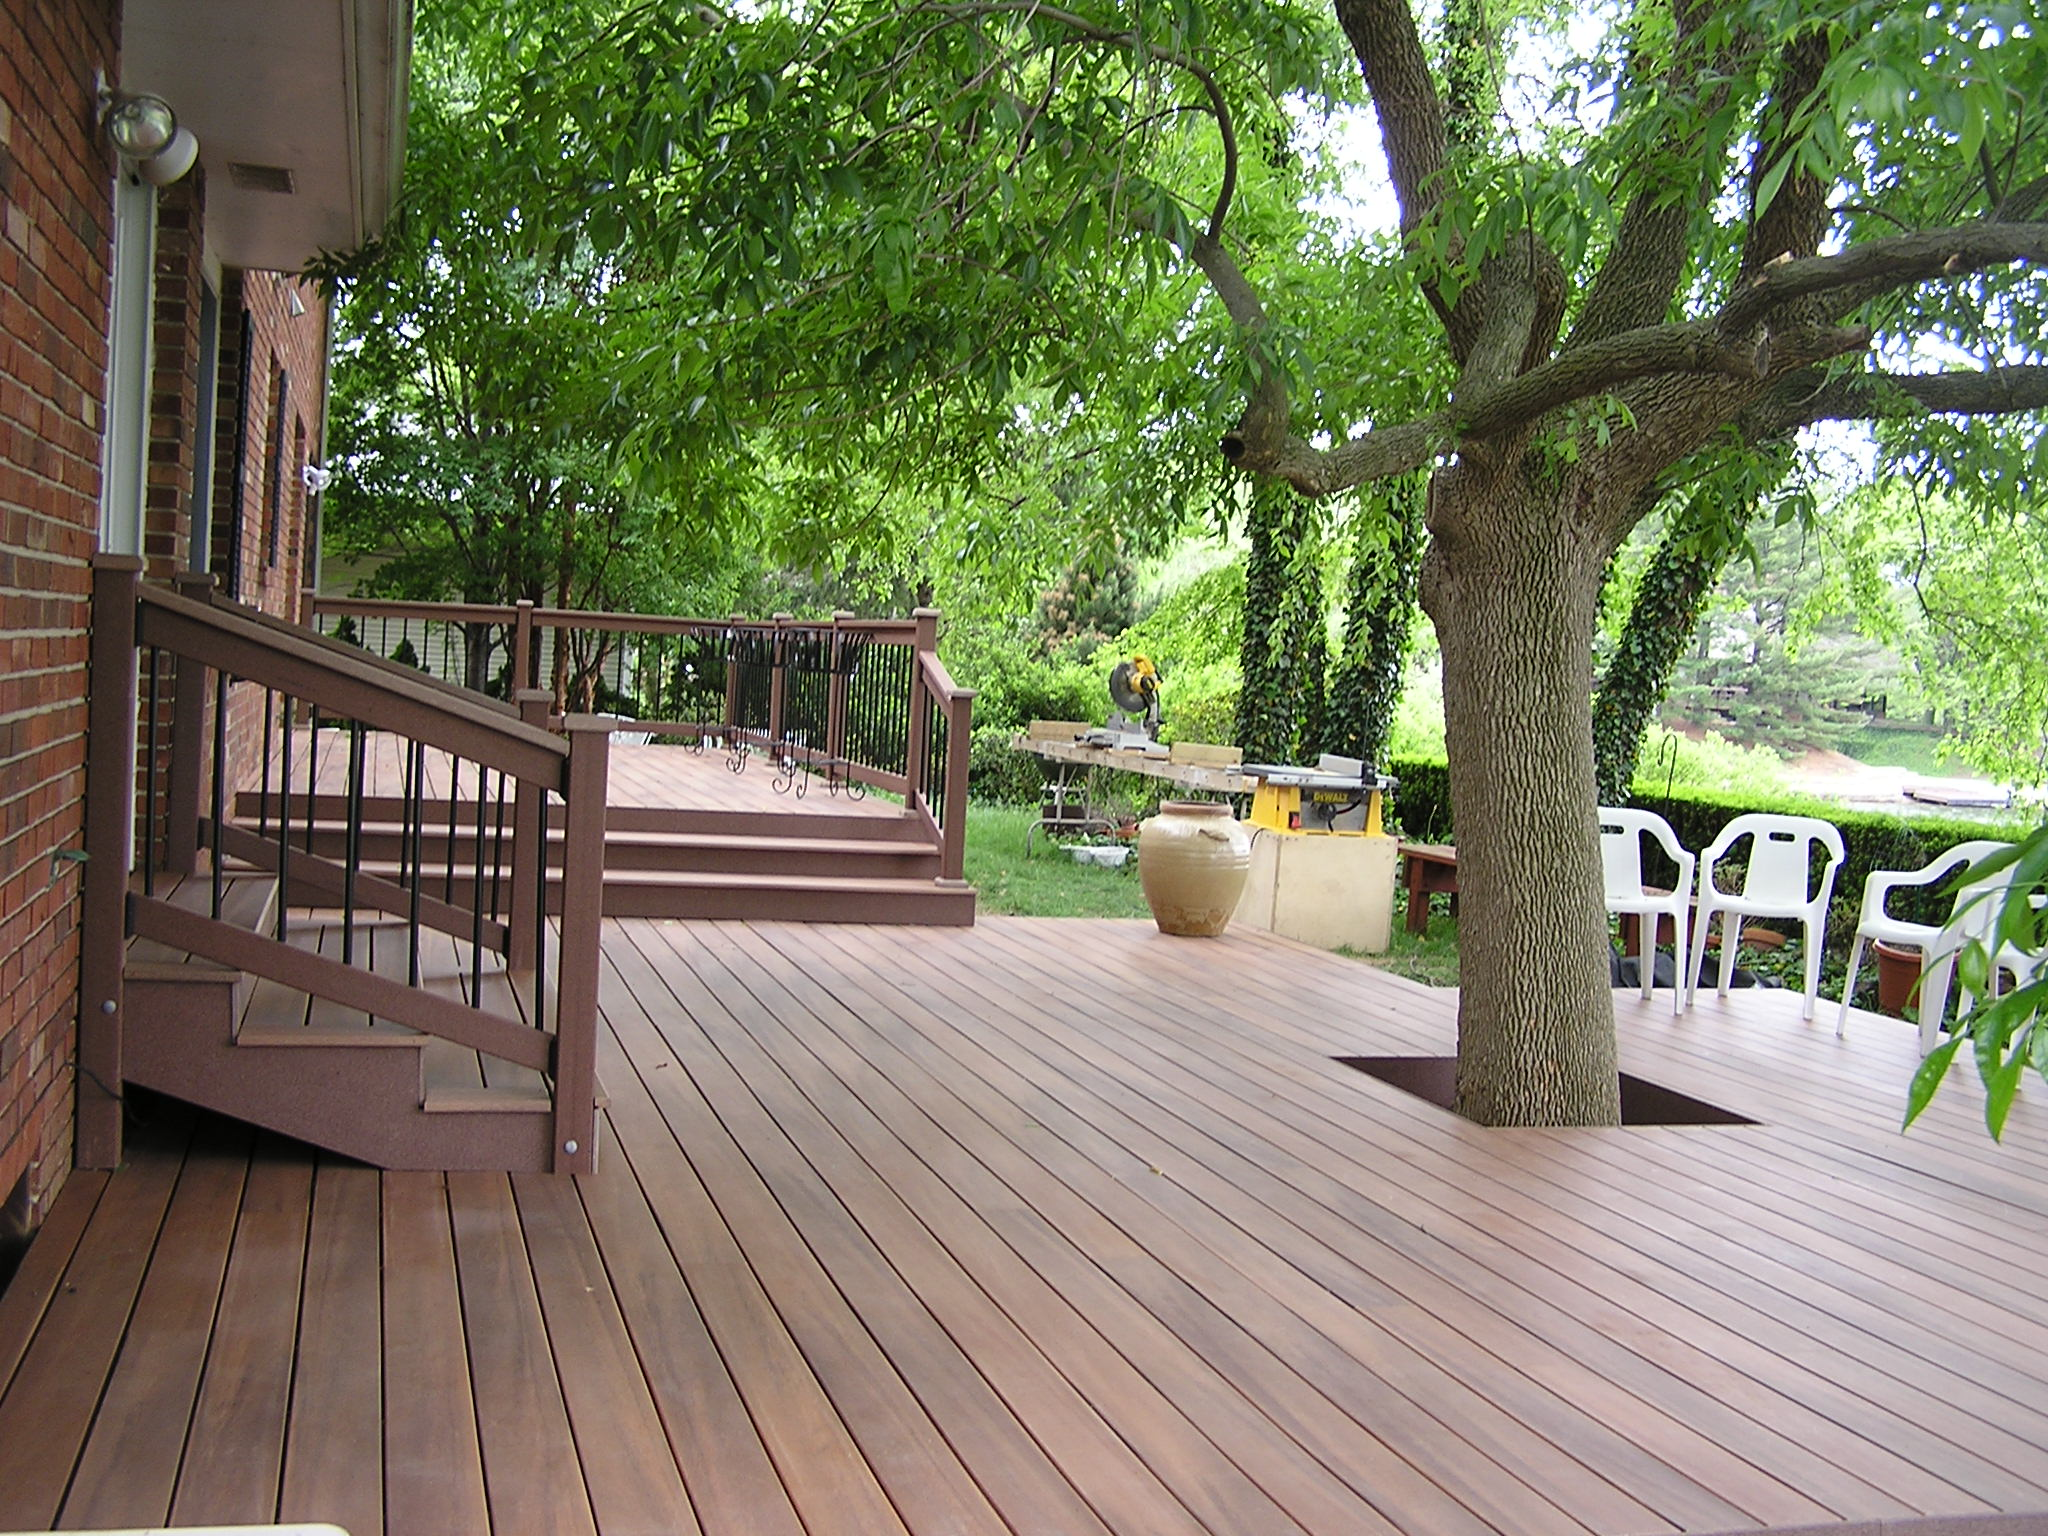 A Deck, a Lake, and a Shade Tree - Fros Carpentry